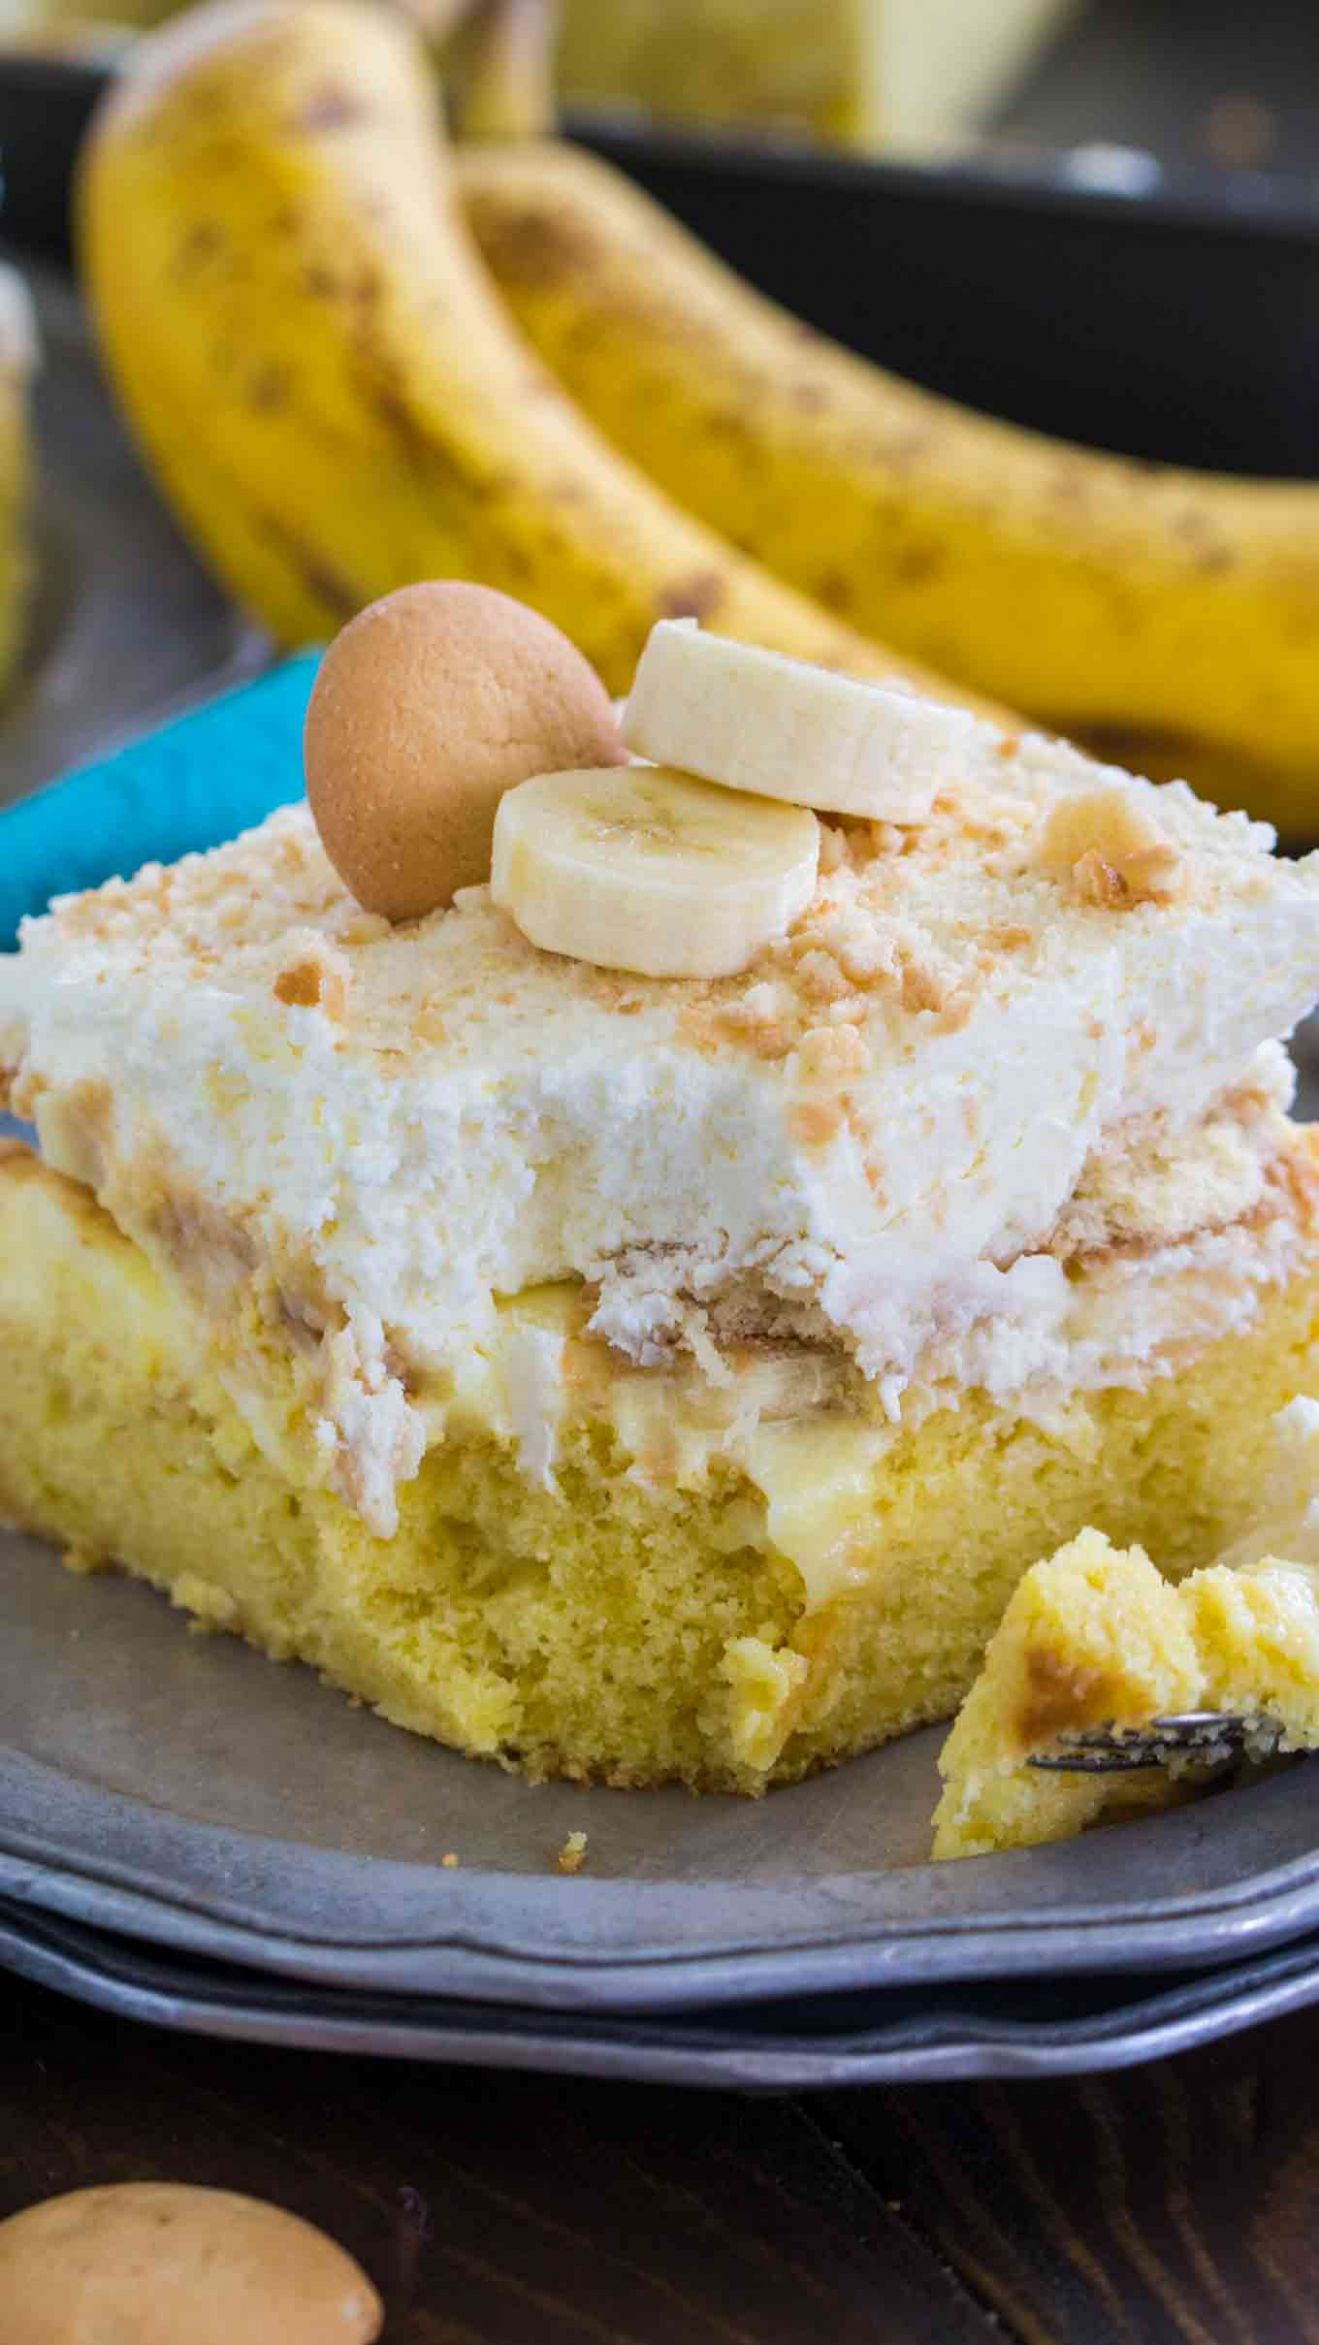 Best Ripe Banana Recipes [VIDEO] - Sweet and Savory Meals